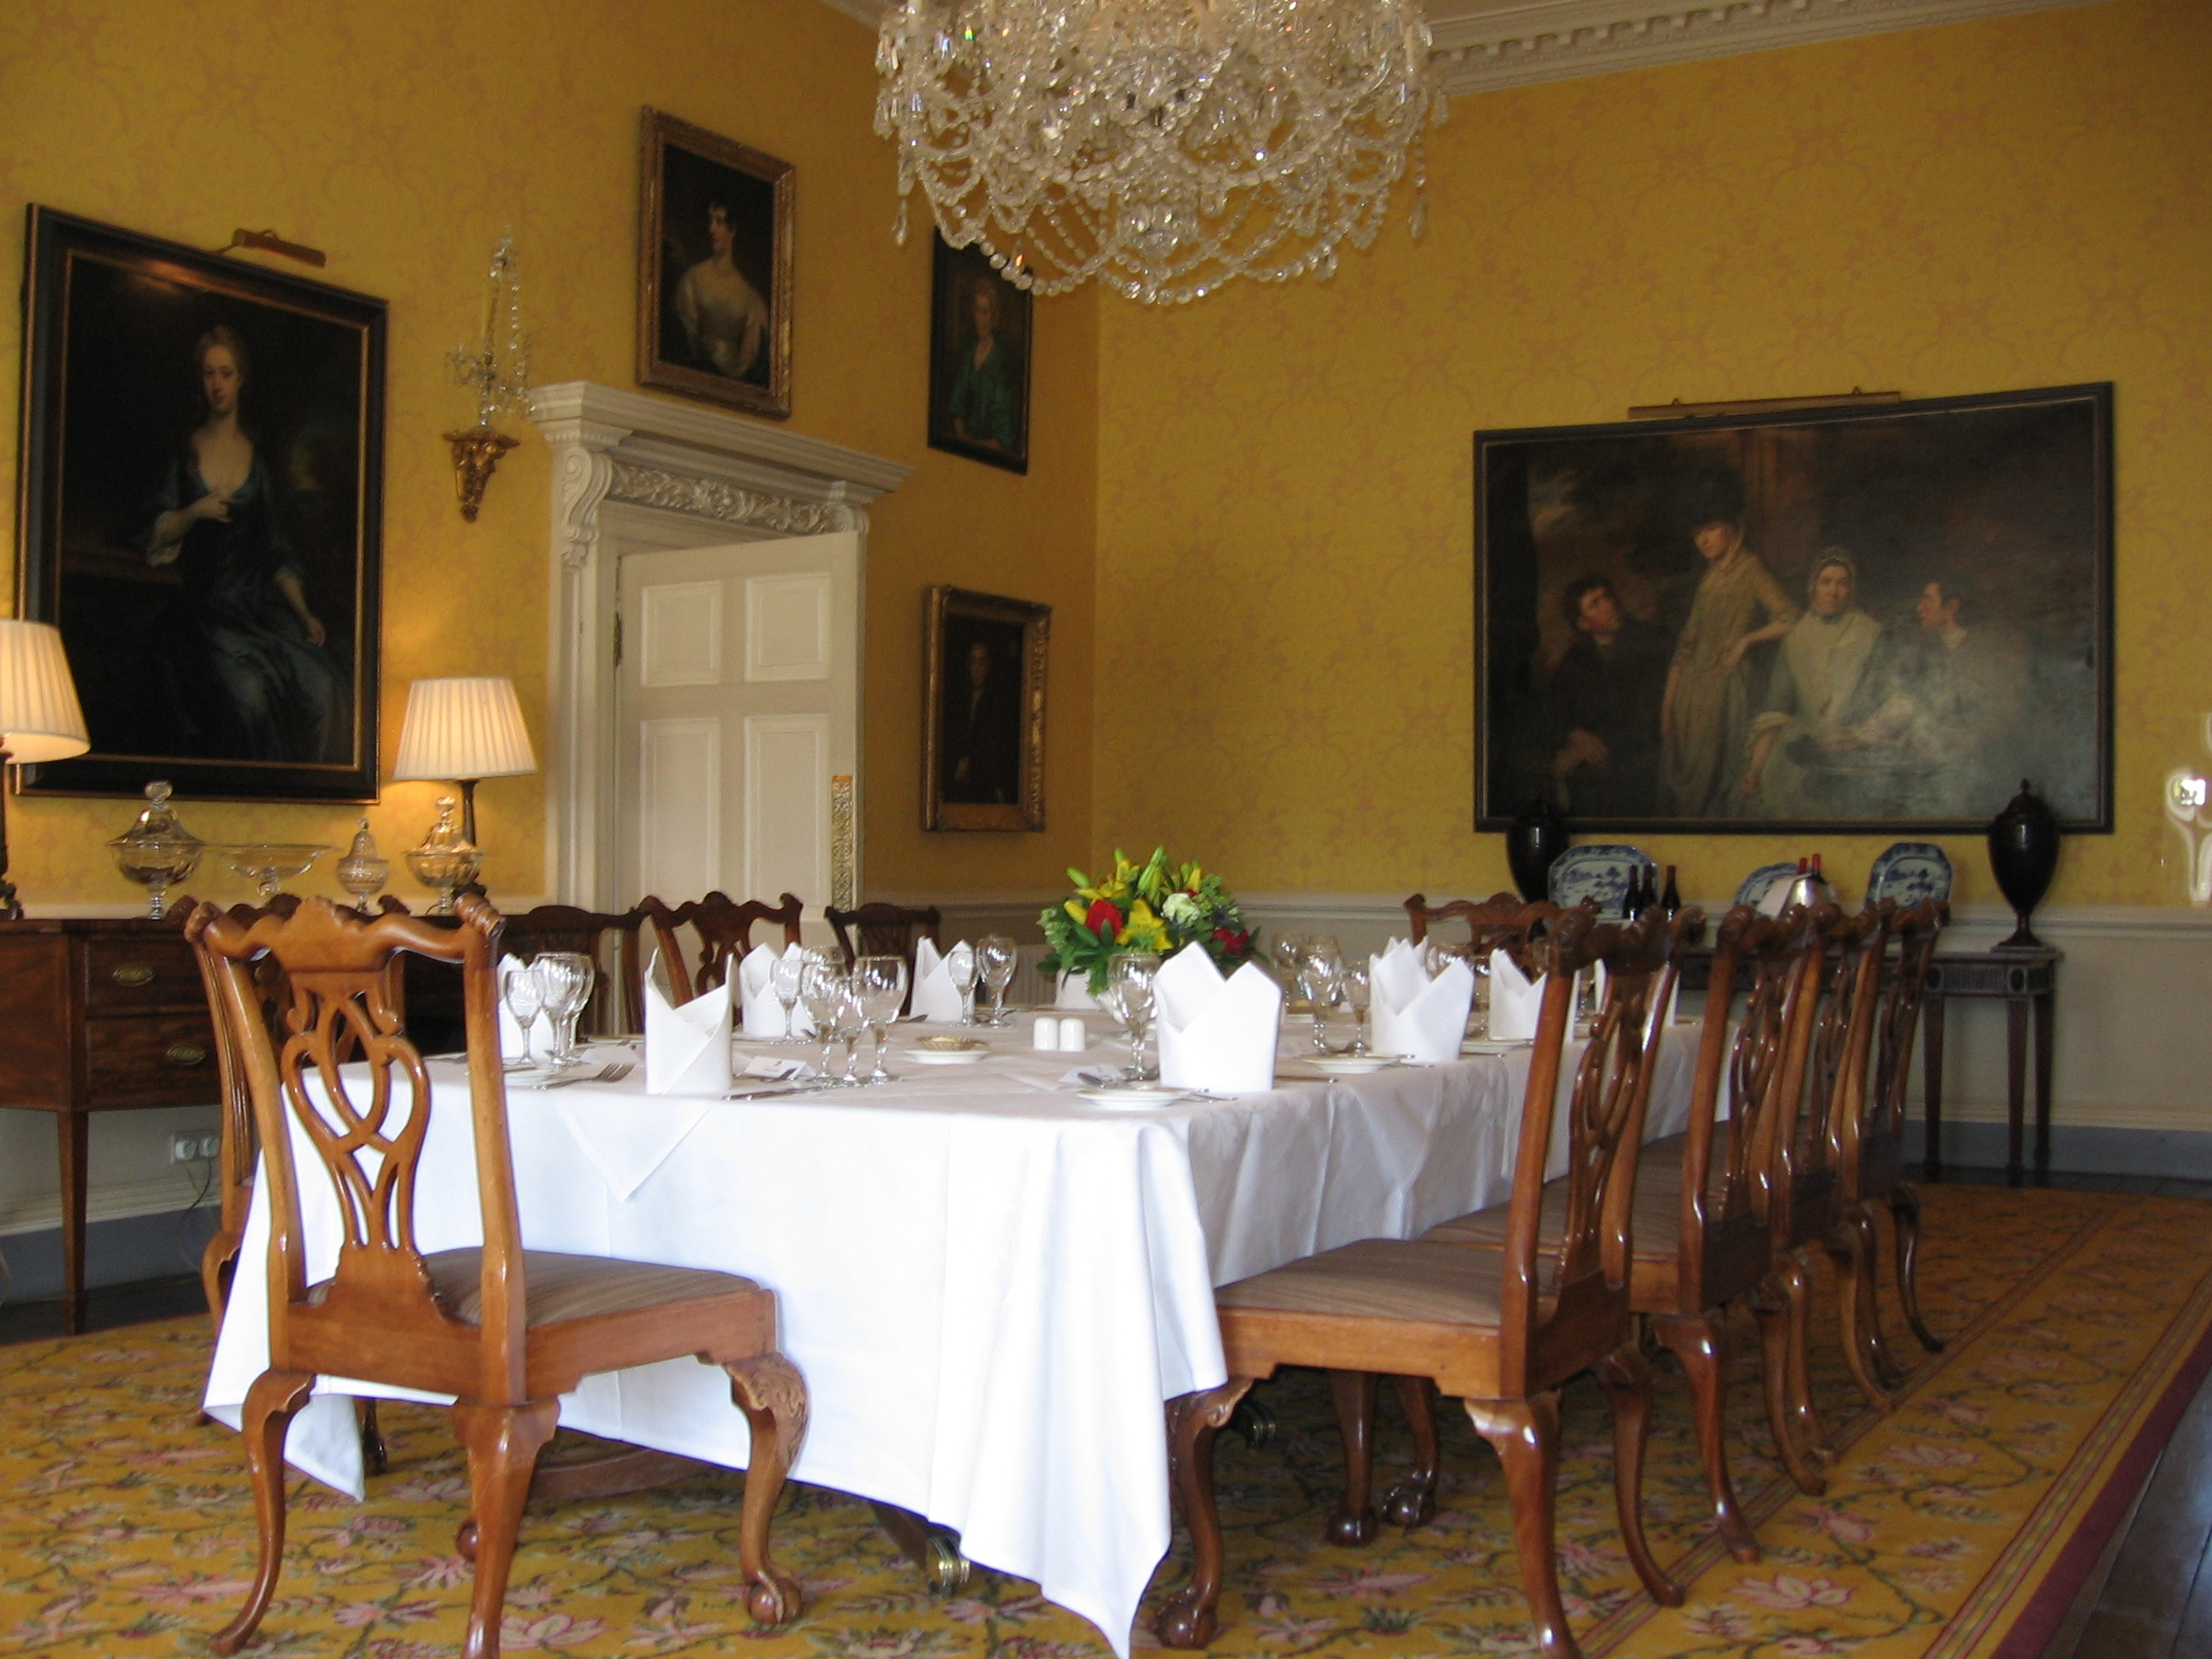 Archivo yellowdiningroomstoneaston jpg wikipedia la for Dining room or there is nothing wiki